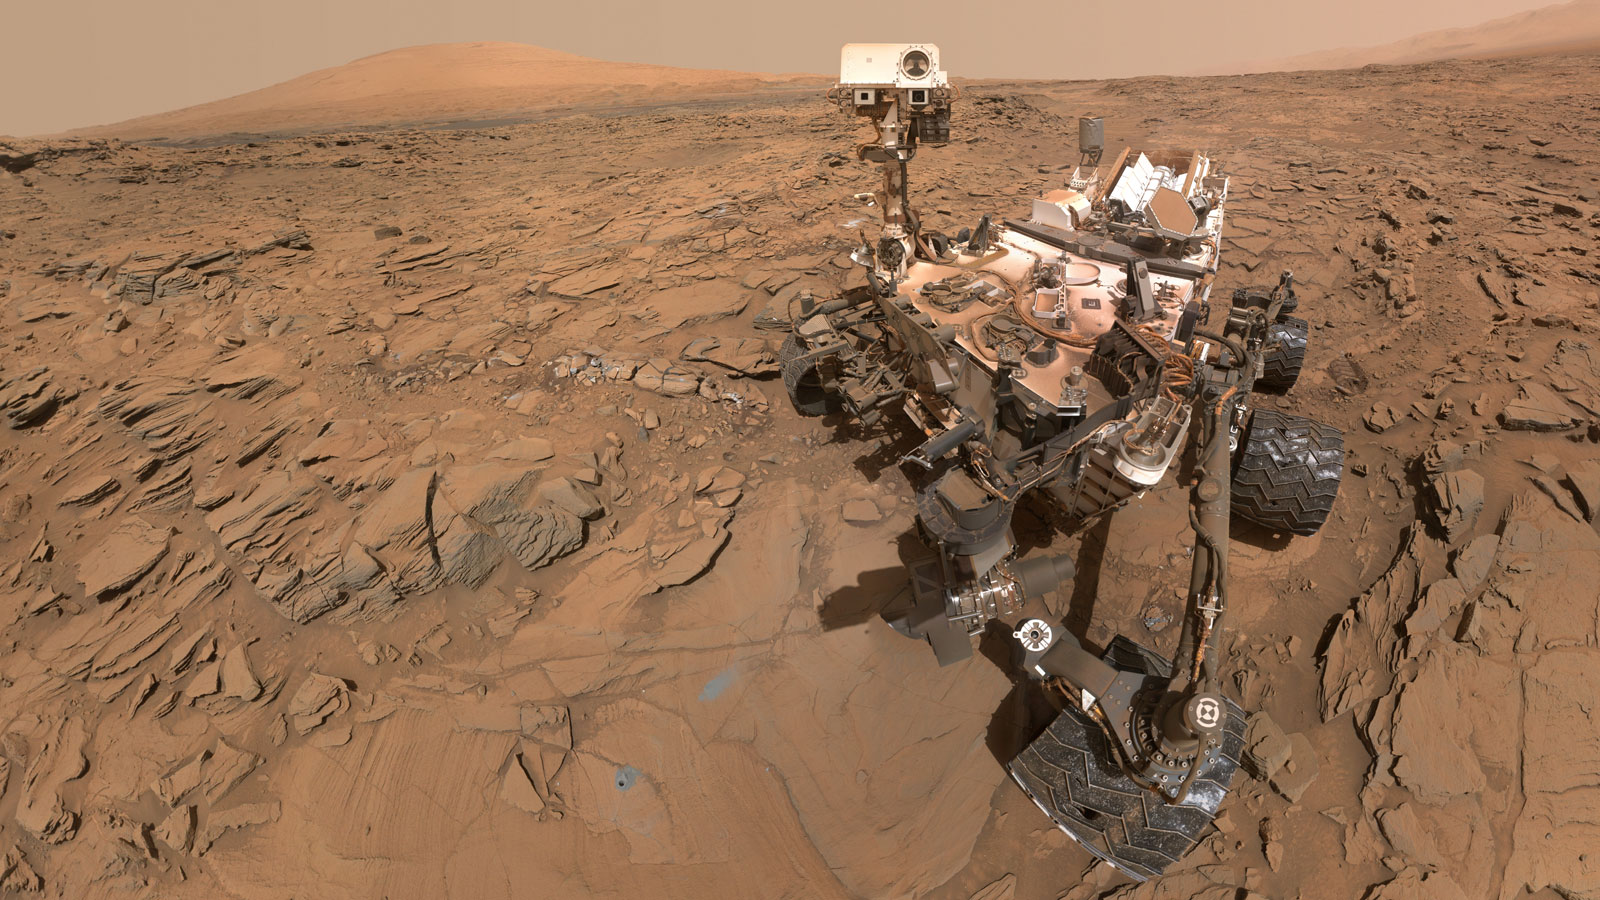 Curiosity the Mars Rover: 5 Interesting Facts You Didn't Know